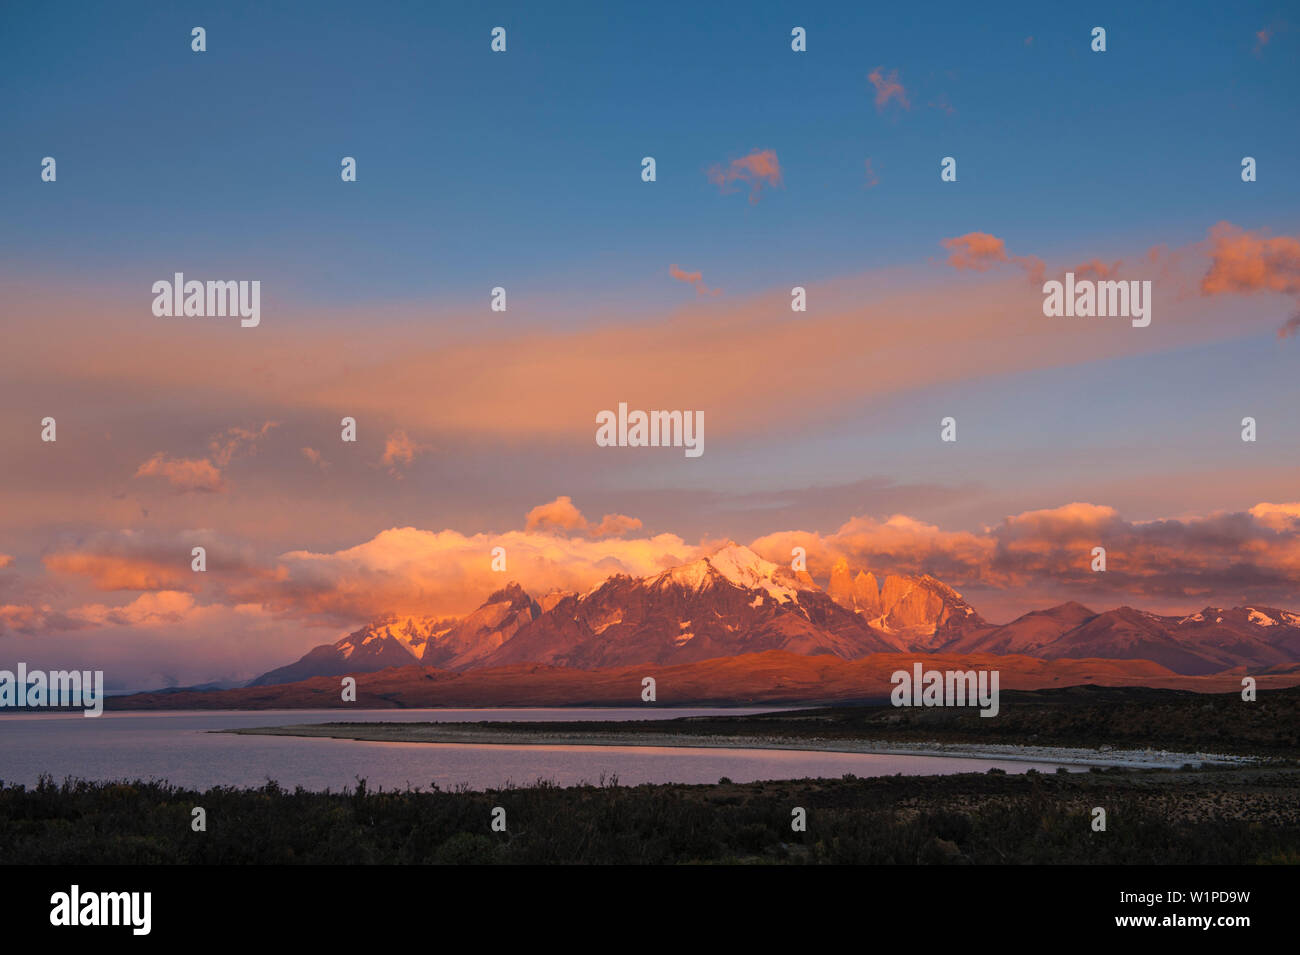 The last light of the sun falls on high craggy snow-covered peaks, Torres del Paine National Park, Magallanes y de la Antartica Chilena, Patagonia, Ch - Stock Image